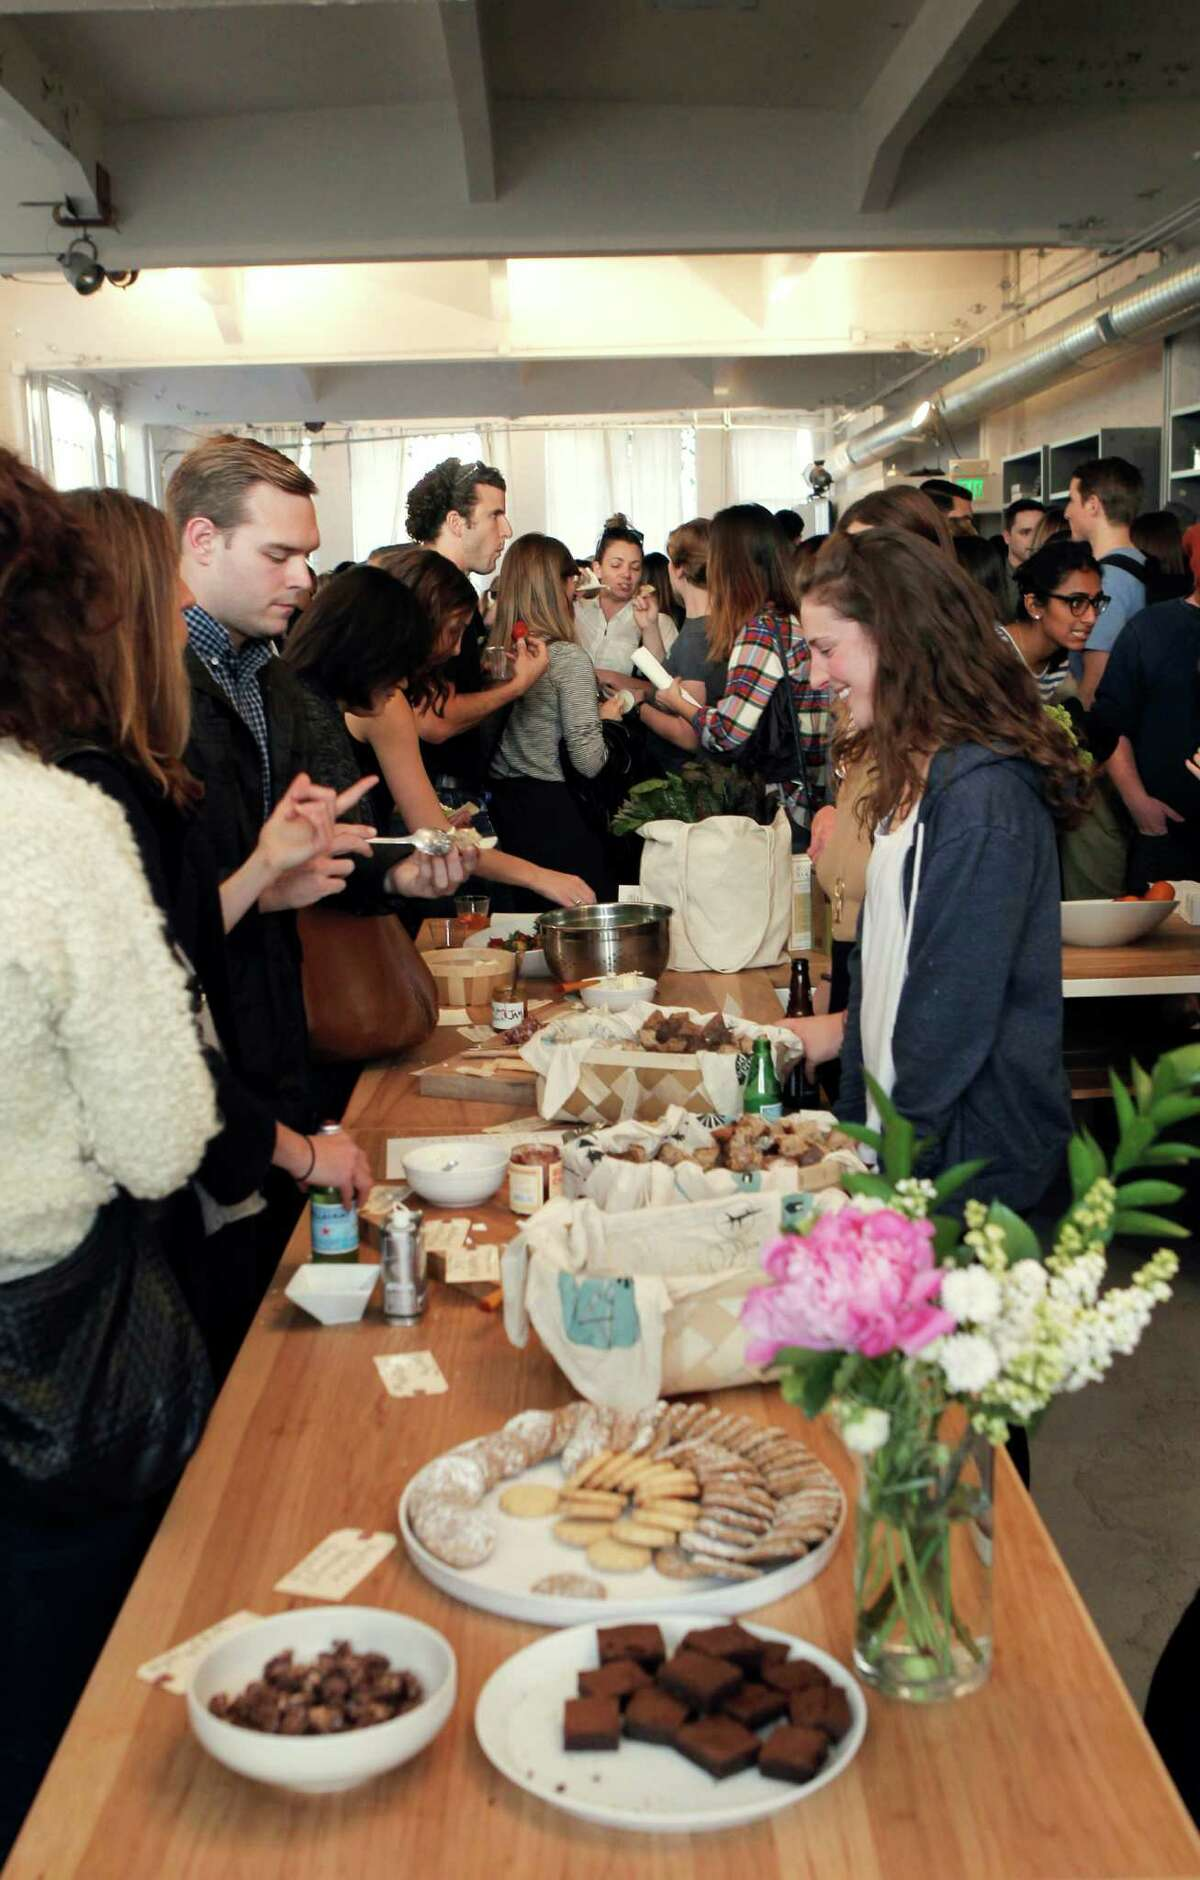 Customers socialize and sample Good Eggs snacks at the monthly open studio event at Everlane's office.